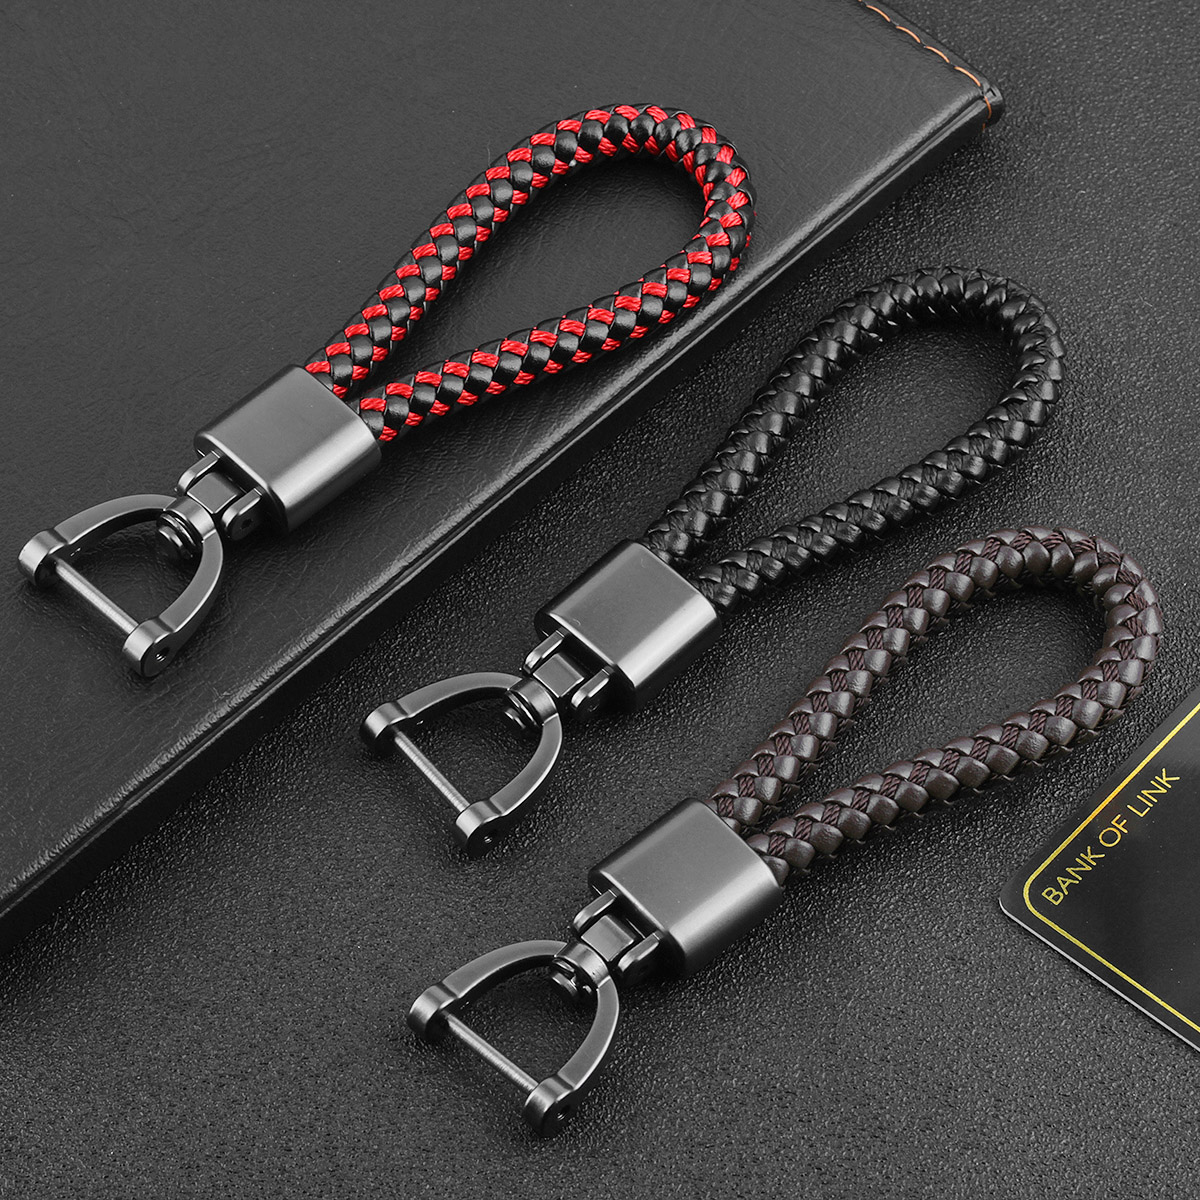 High-Grade Hand Woven Leather Car KeyChain Couples The Man Woman Wallet Chain Bag Charm Christmas Gifts Classic Delicate